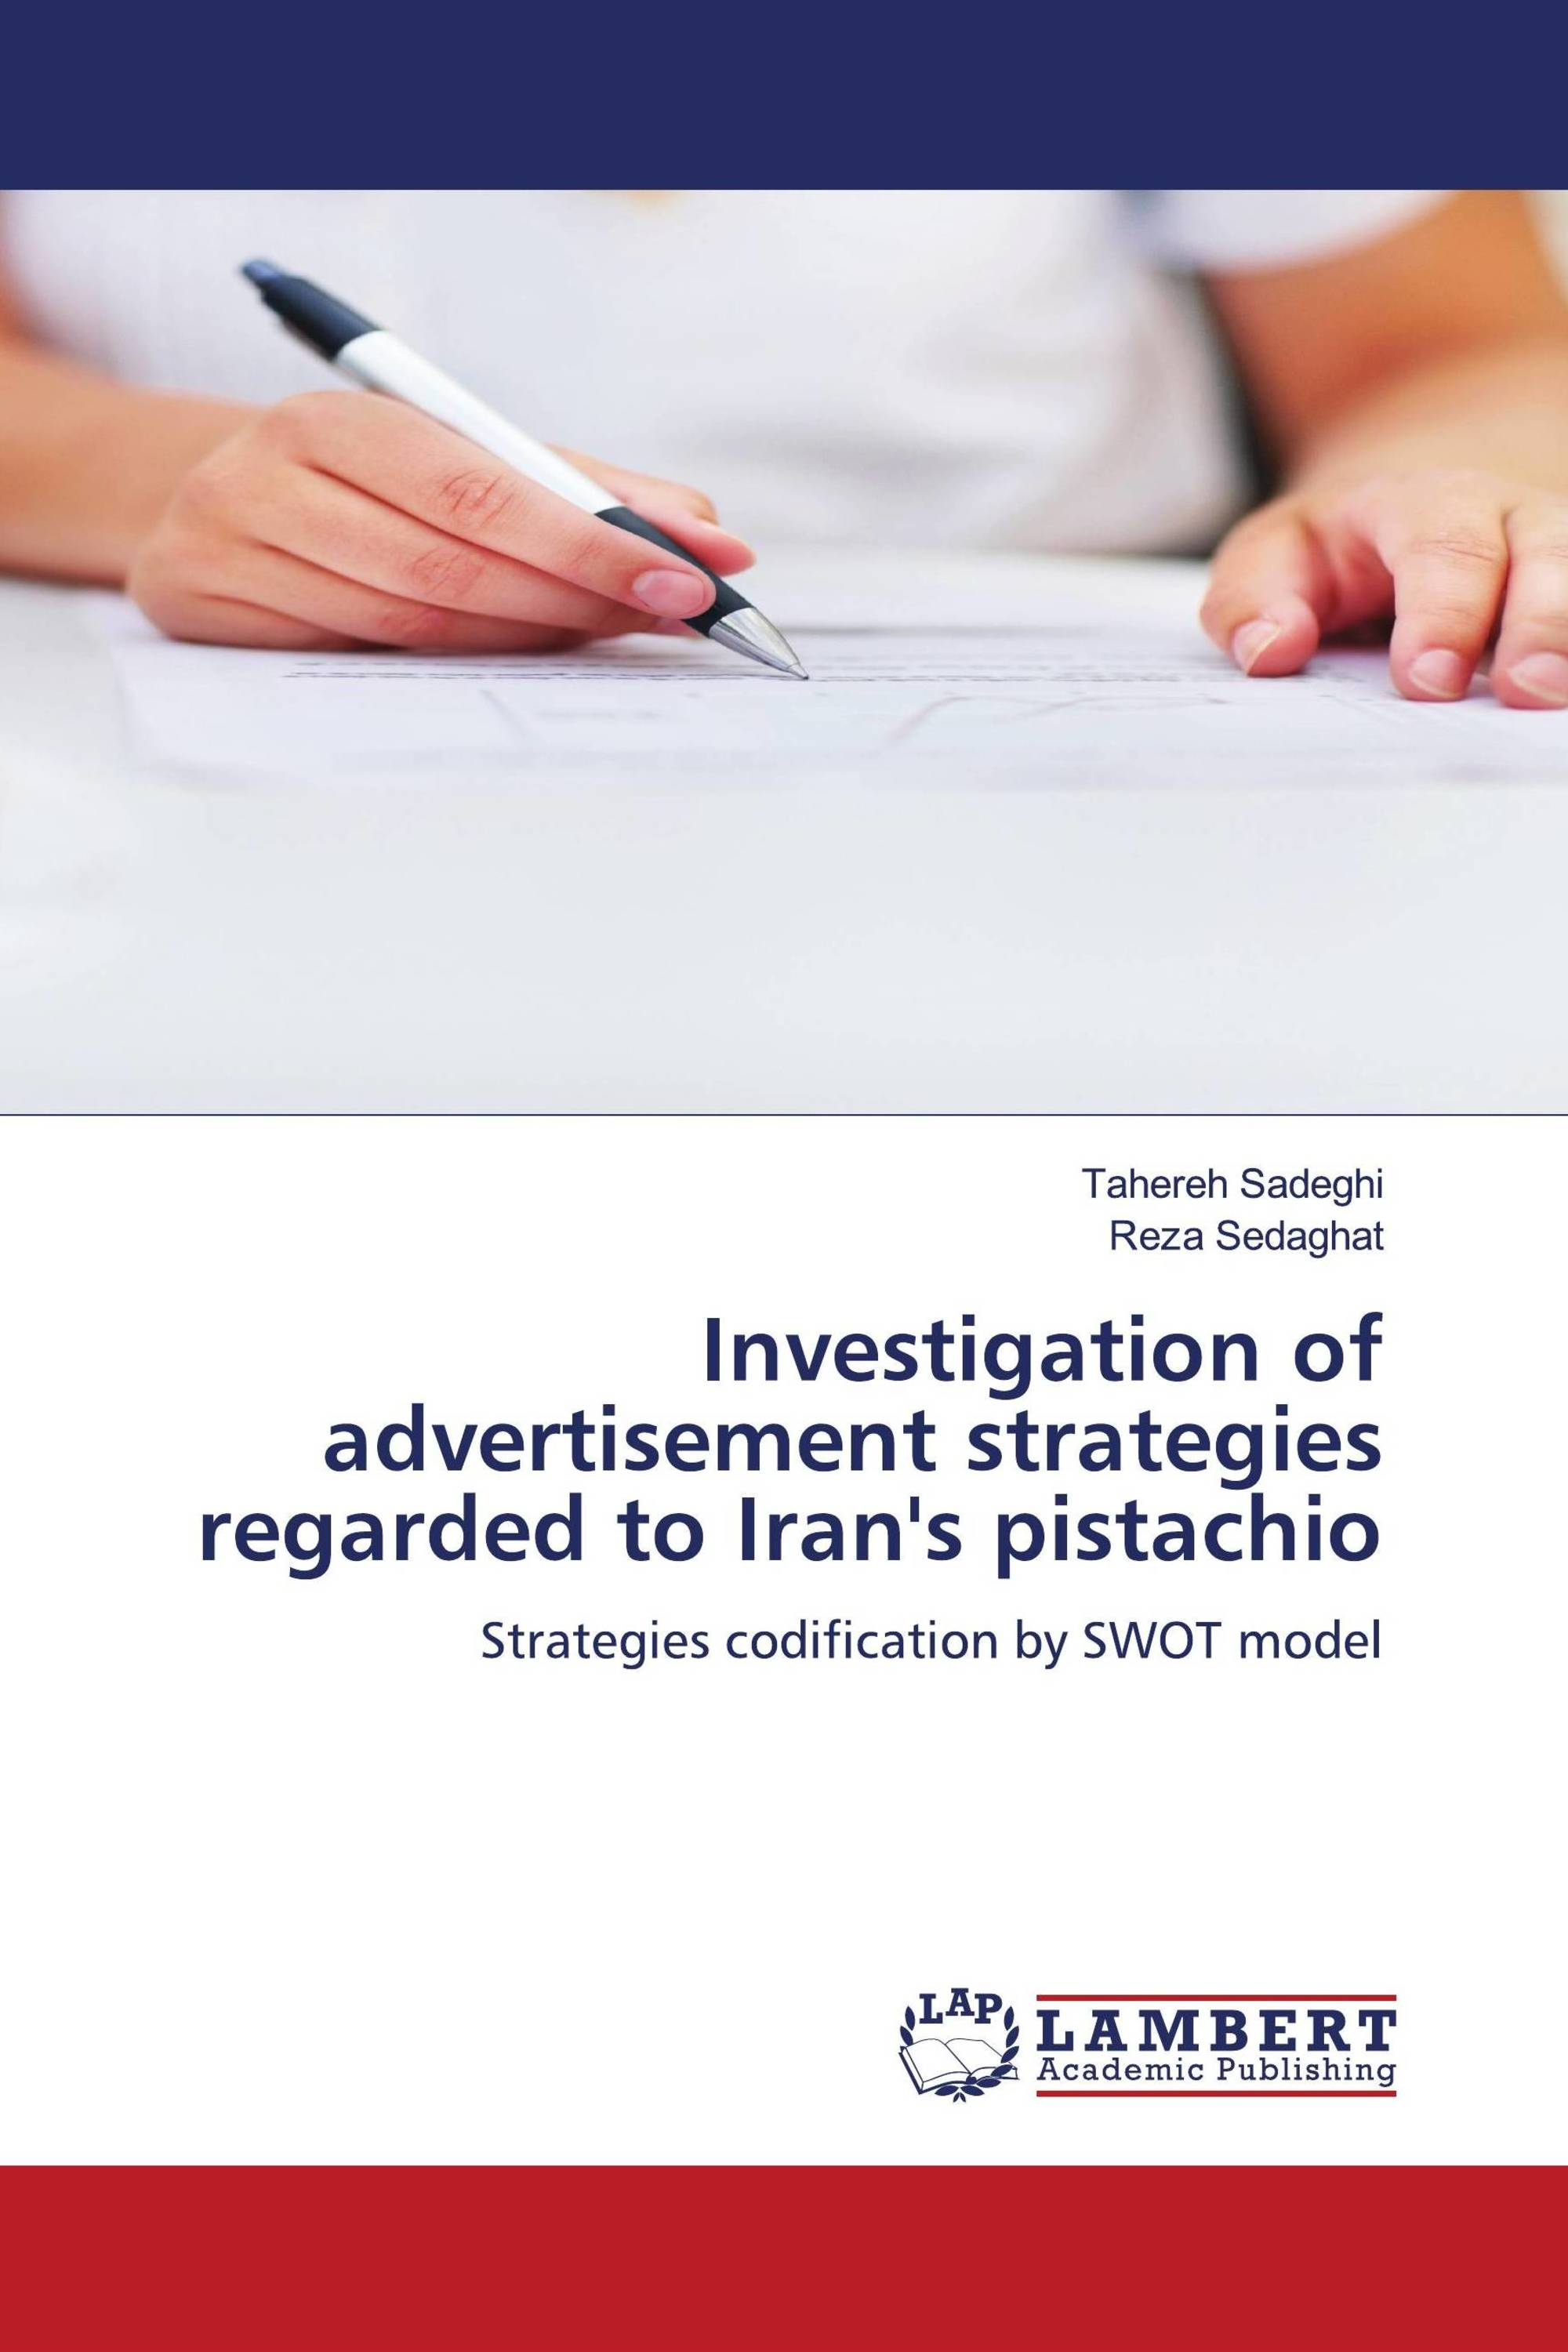 Investigation of advertisement strategies regarded to Iran's pistachio